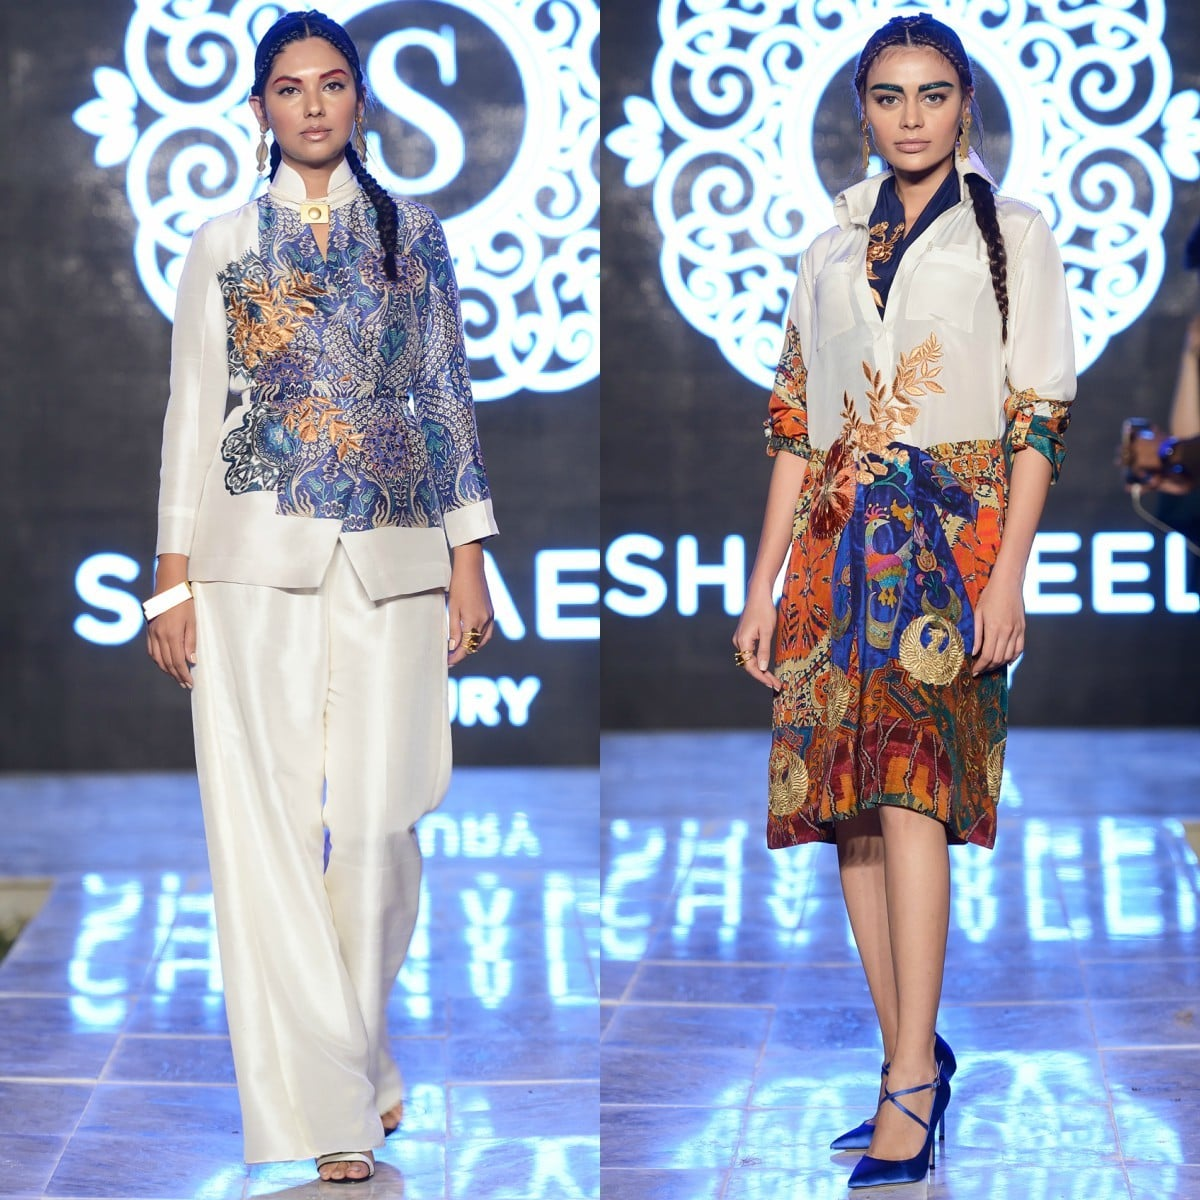 Shamaeel's latest collection features Turkish motifs